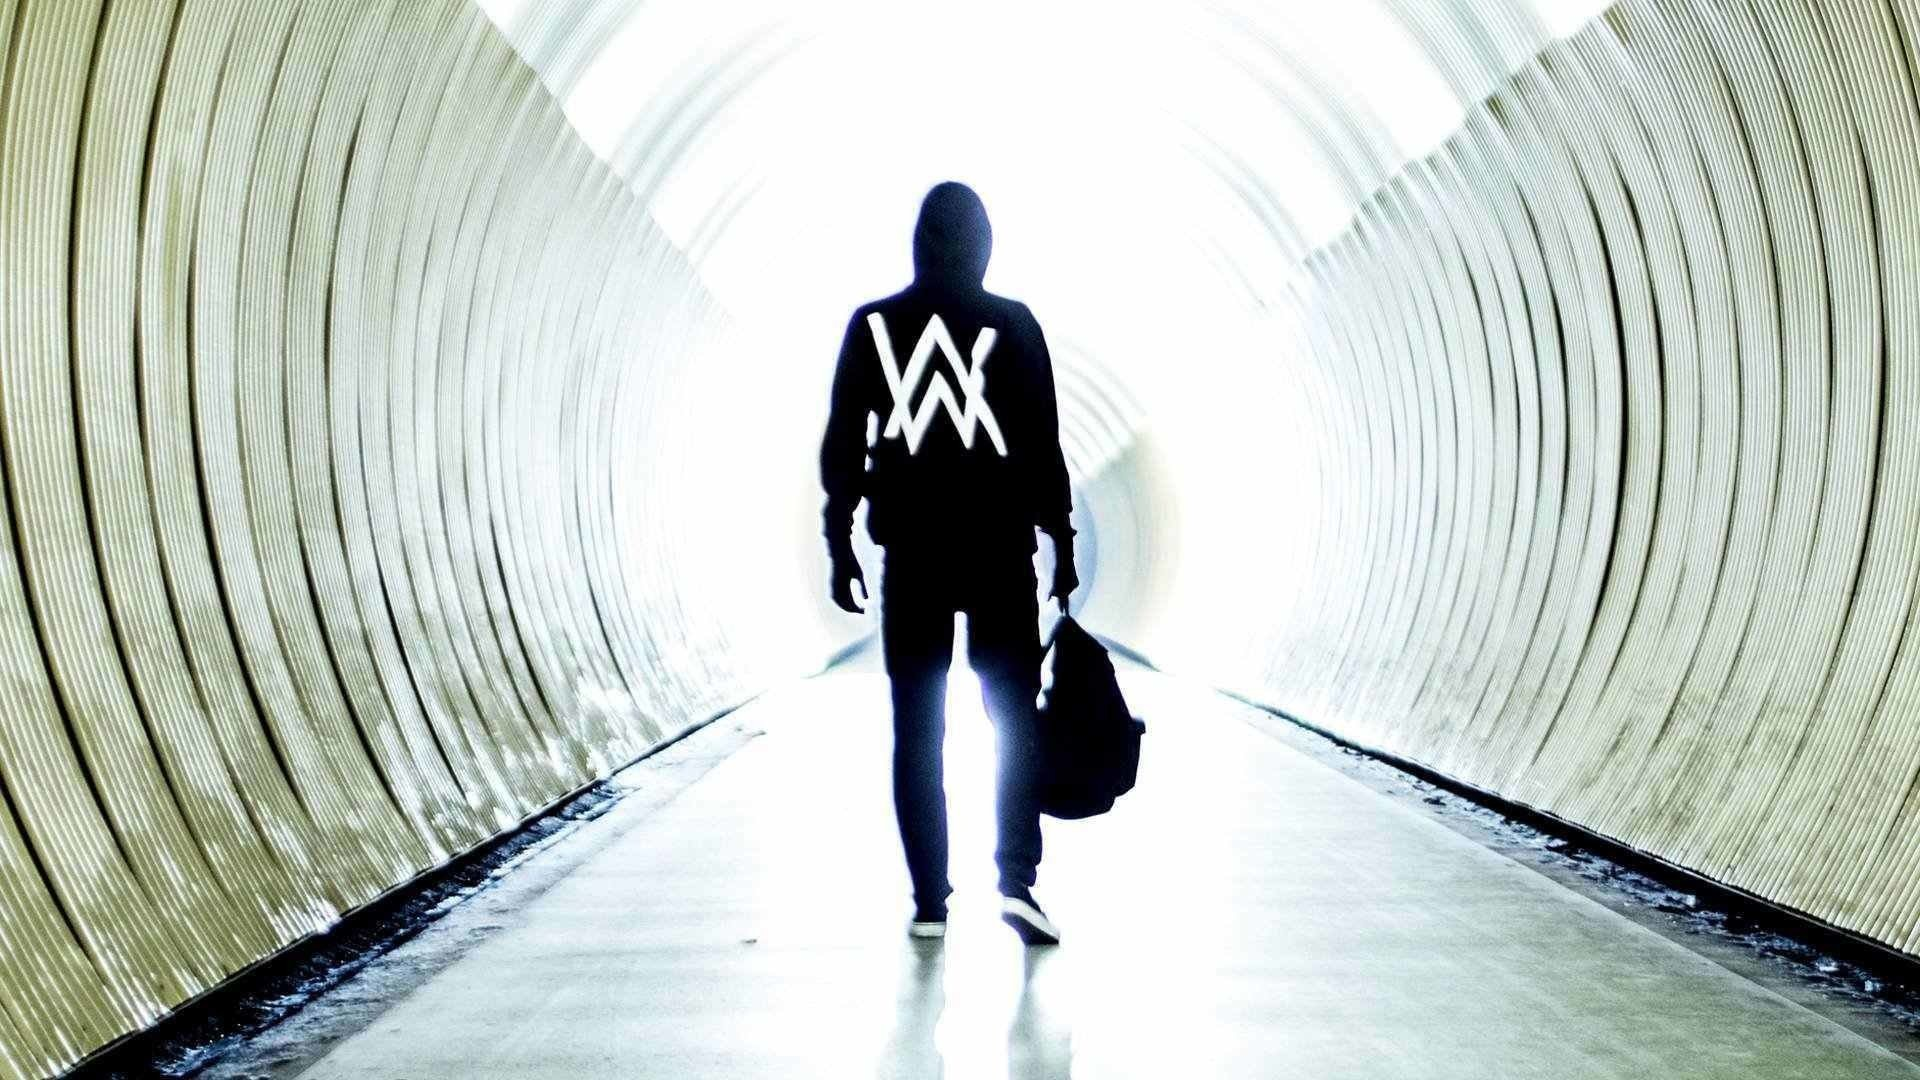 Res: 1920x1080, Music - Alan Walker DJ Music Wallpaper